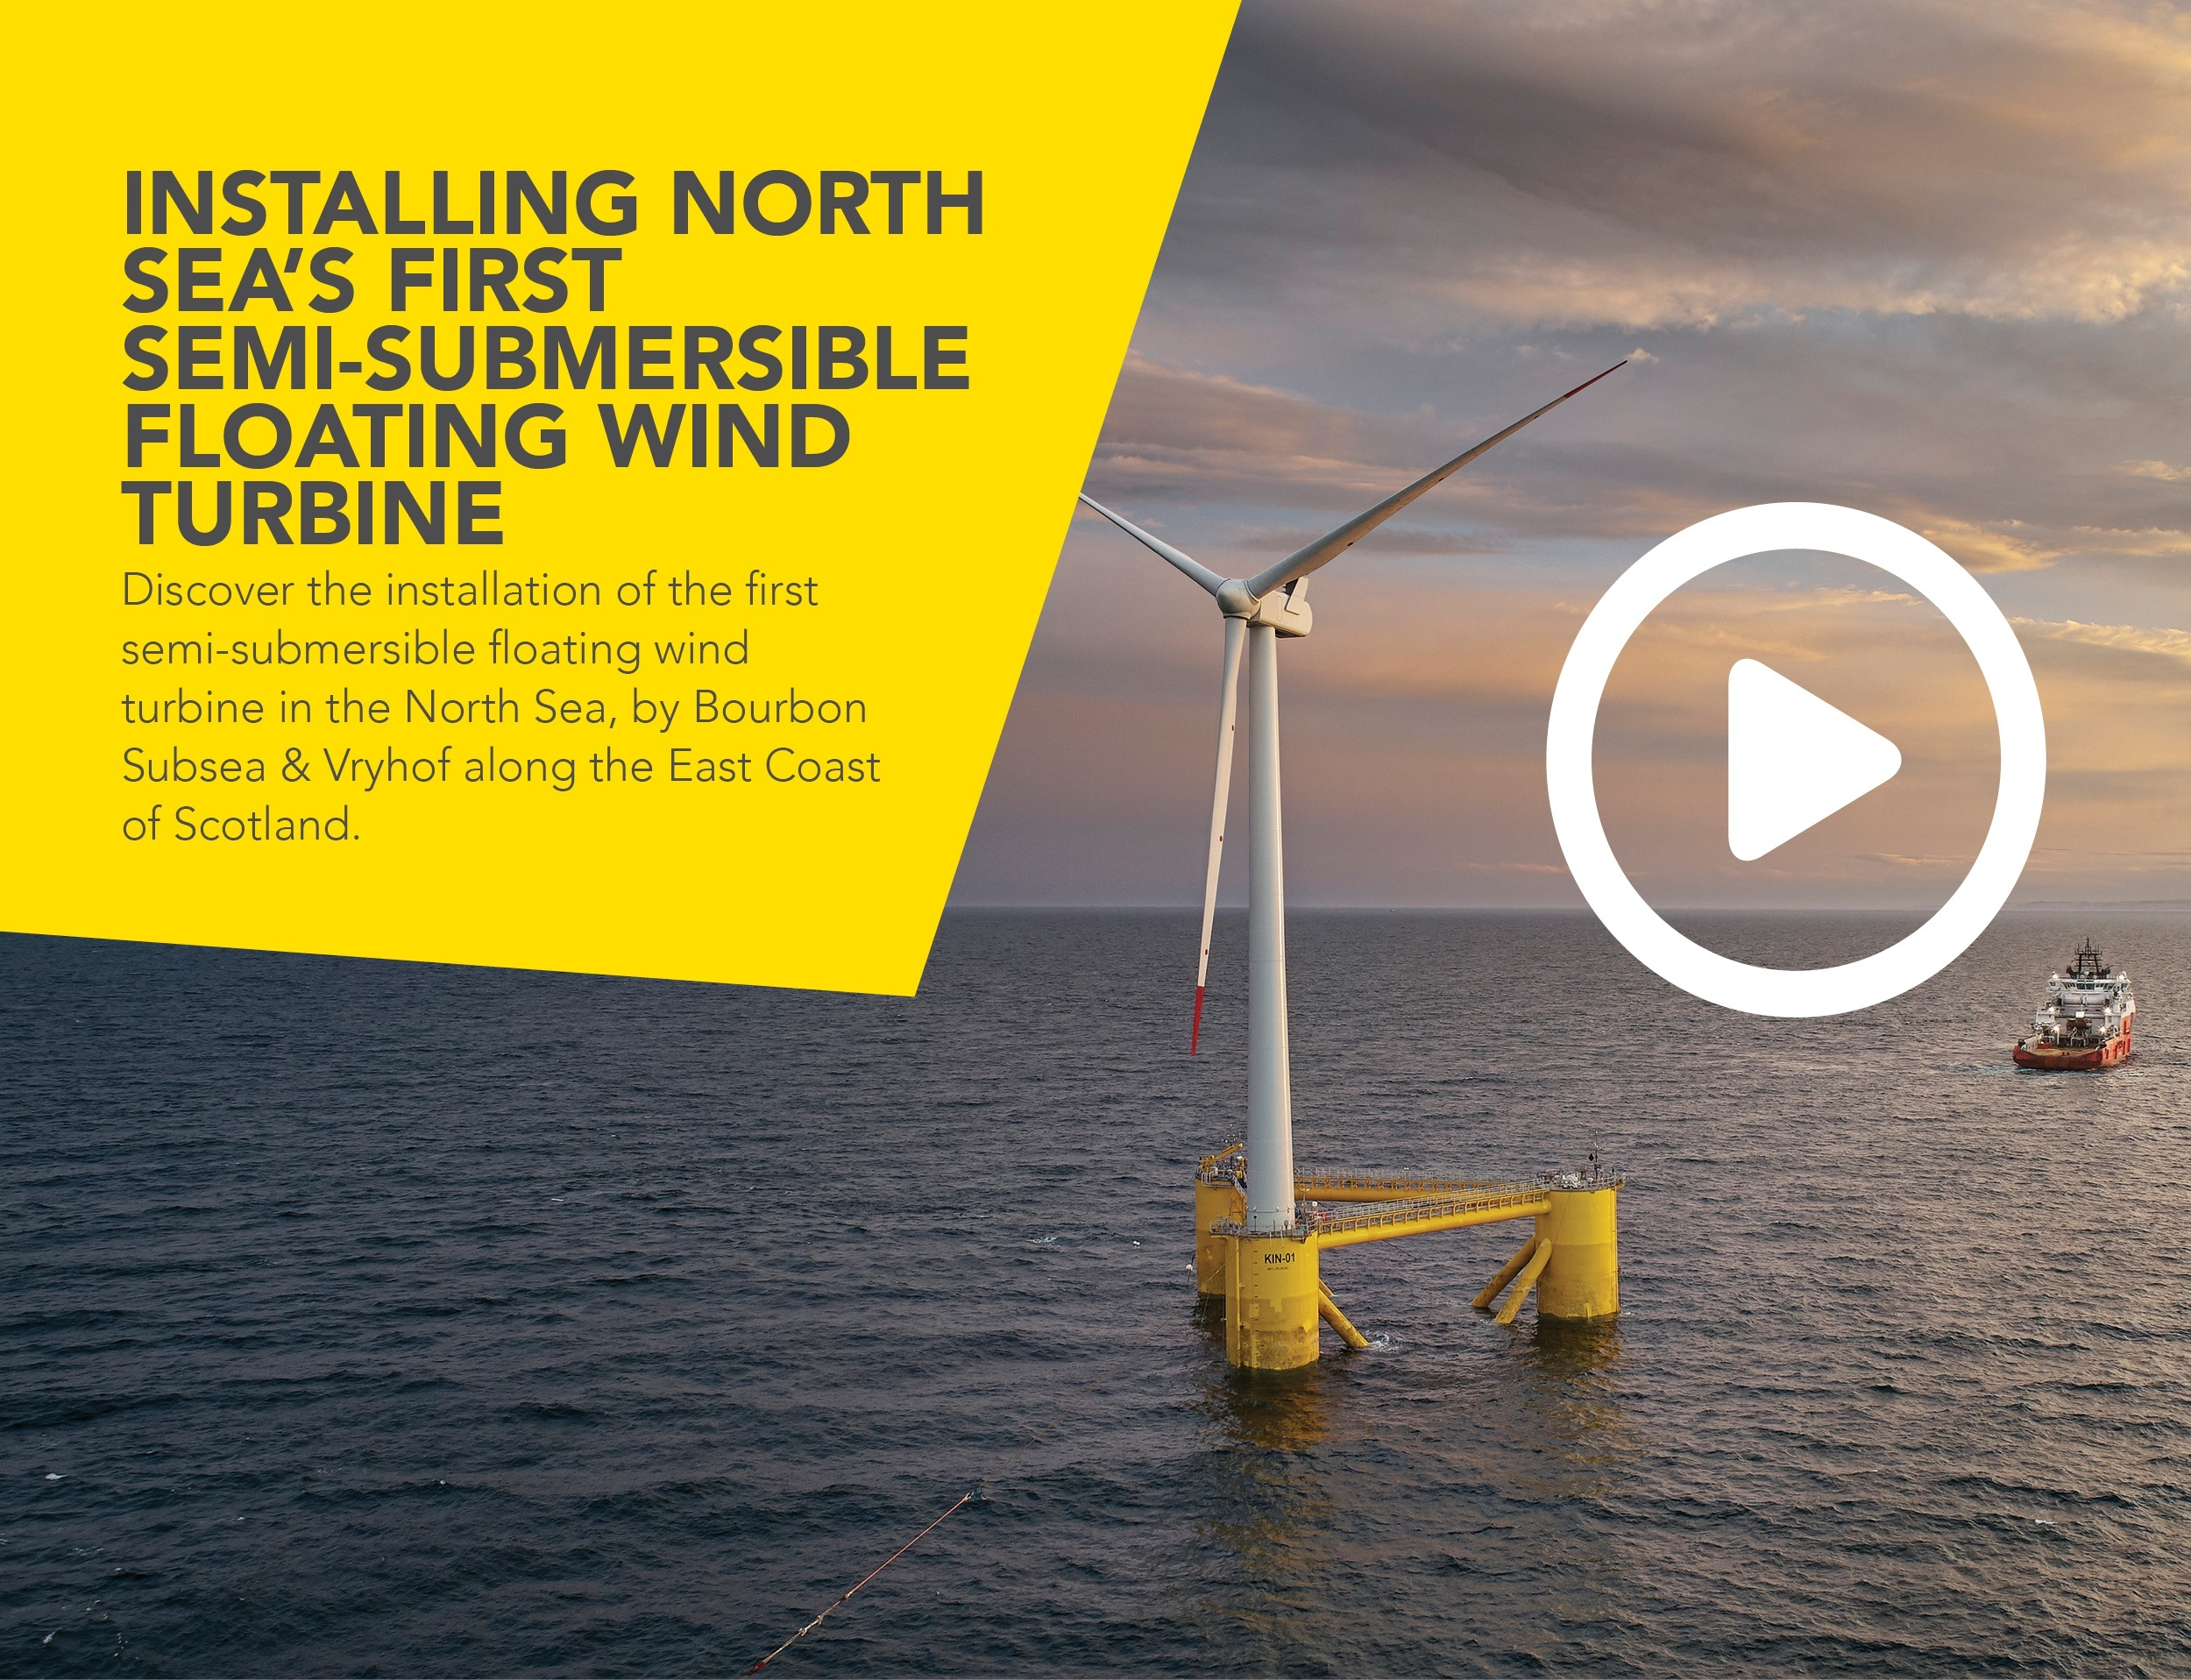 Installing North Sea's first  semi-submersible floating wind turbine